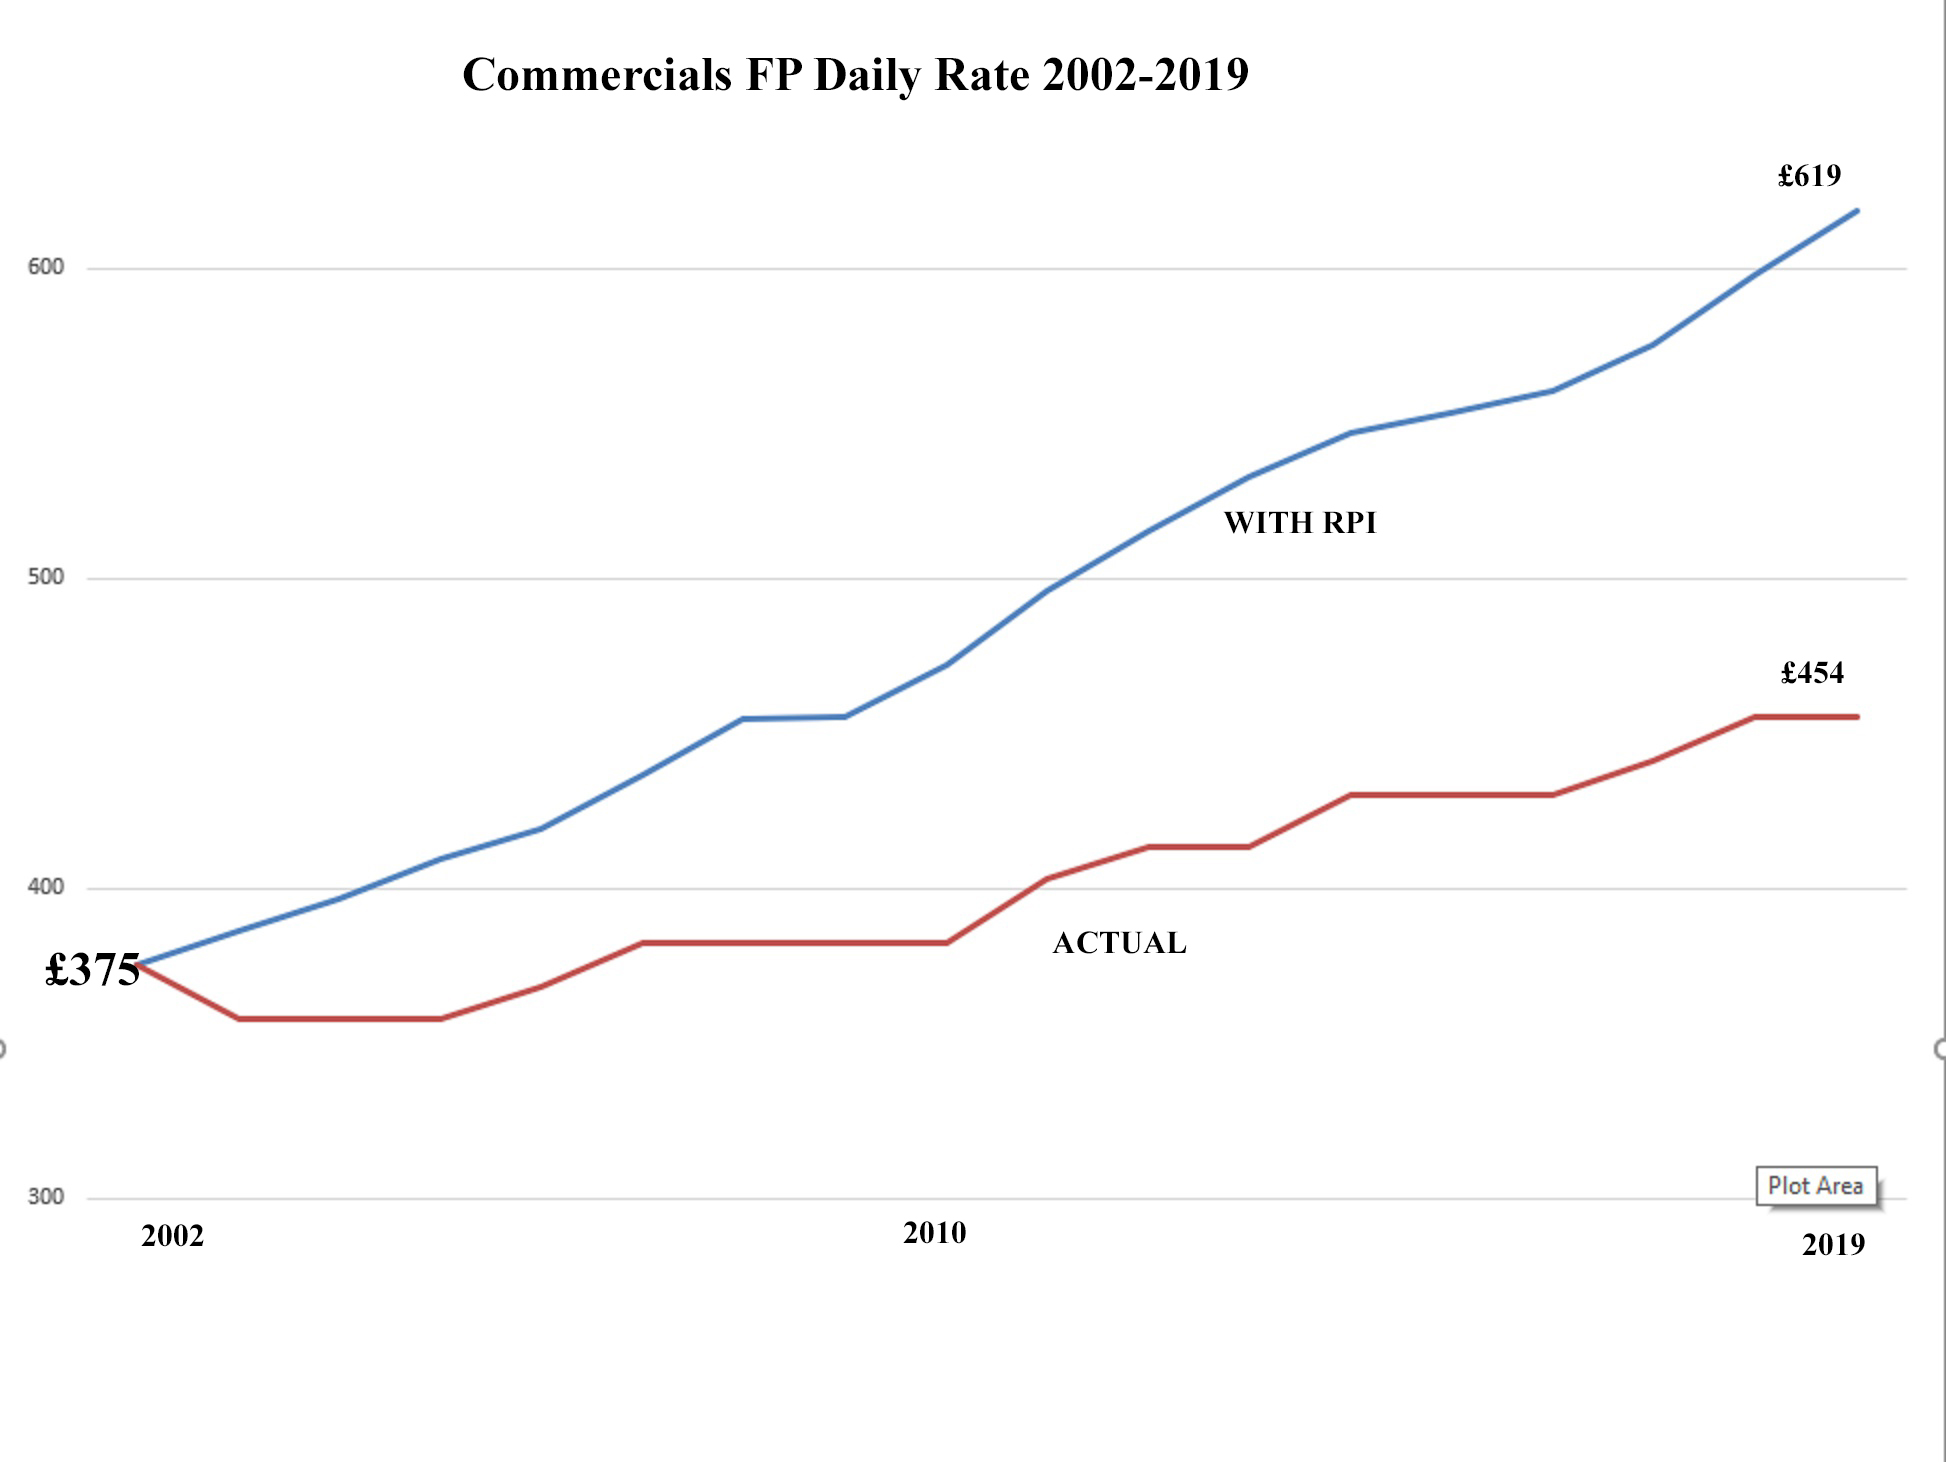 Rate Graph Commercials 2002-2019